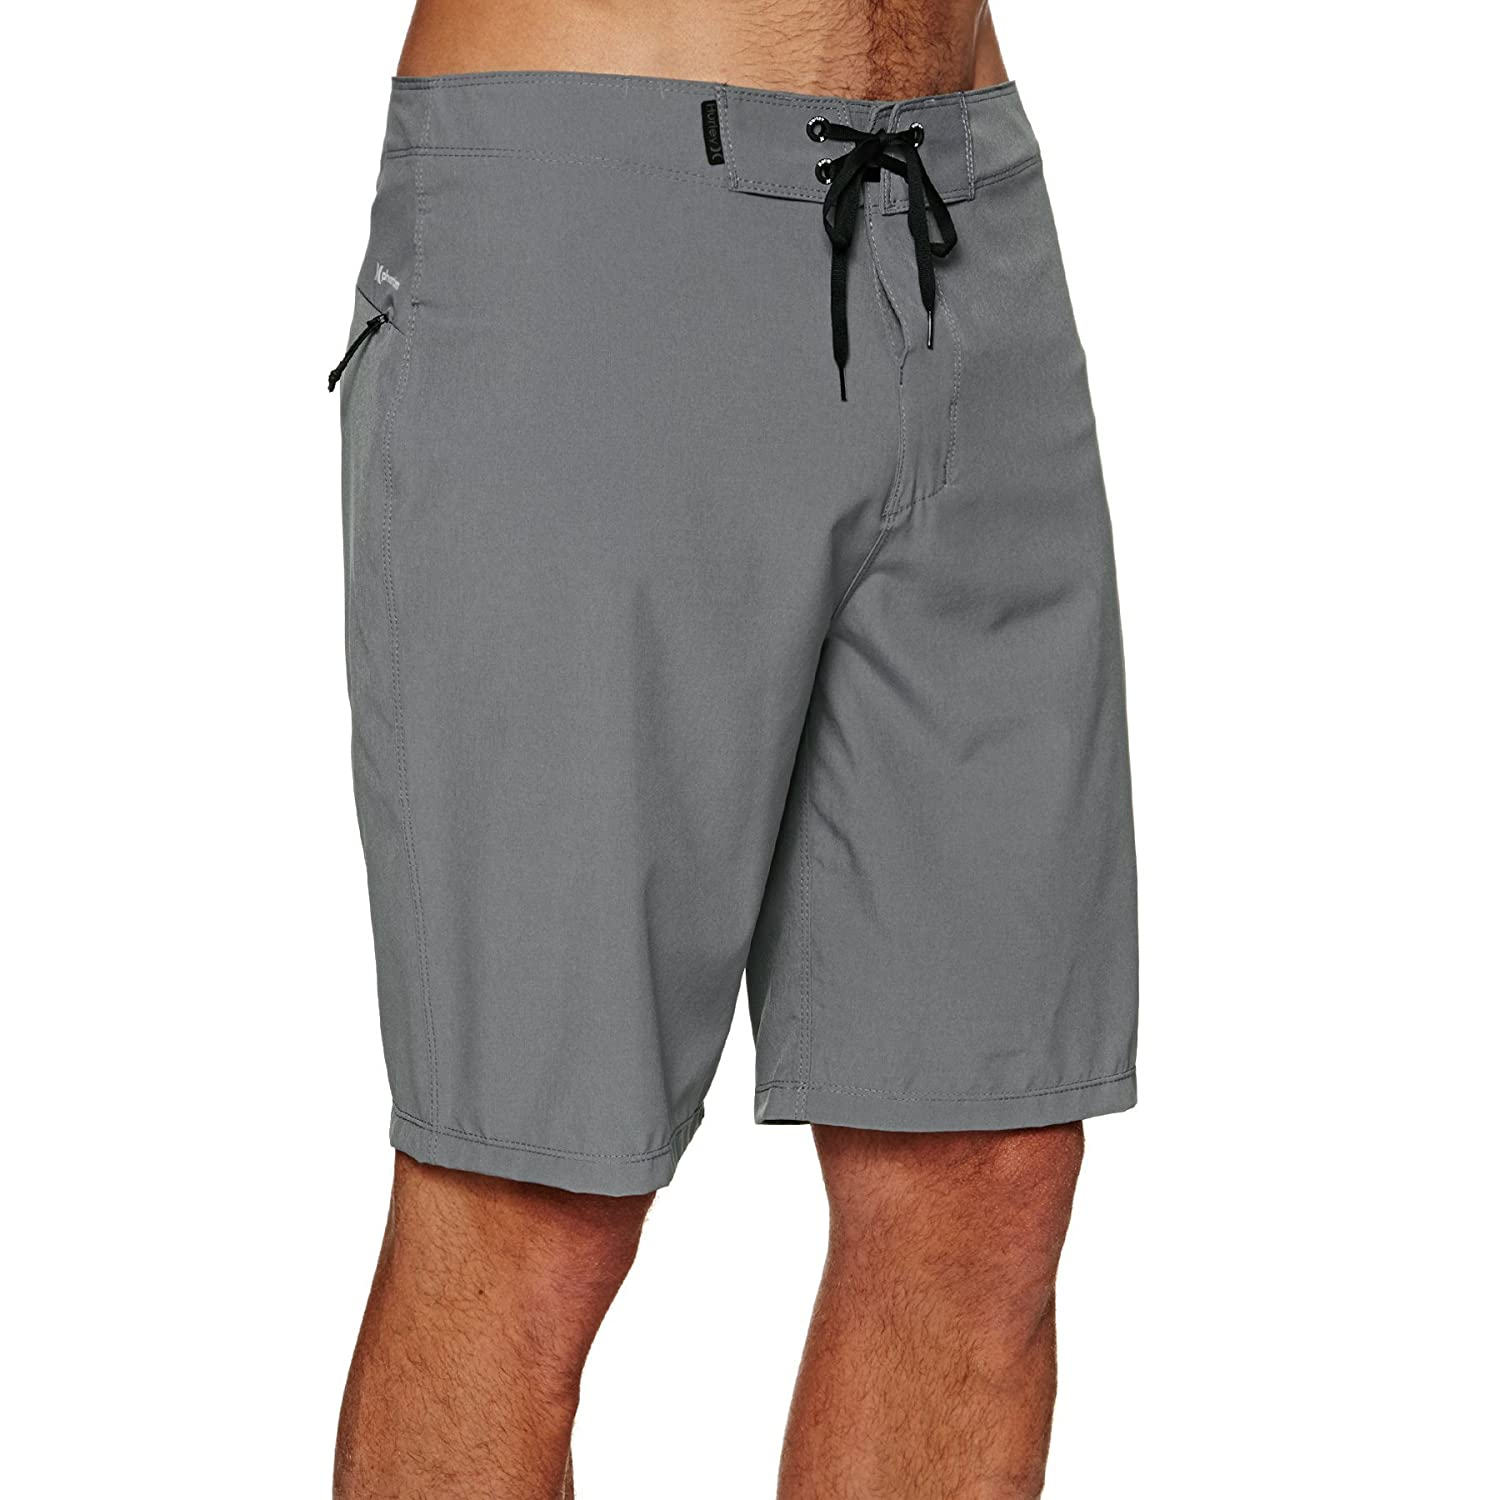 Hurley Mens Phantom One and Only Board Shorts